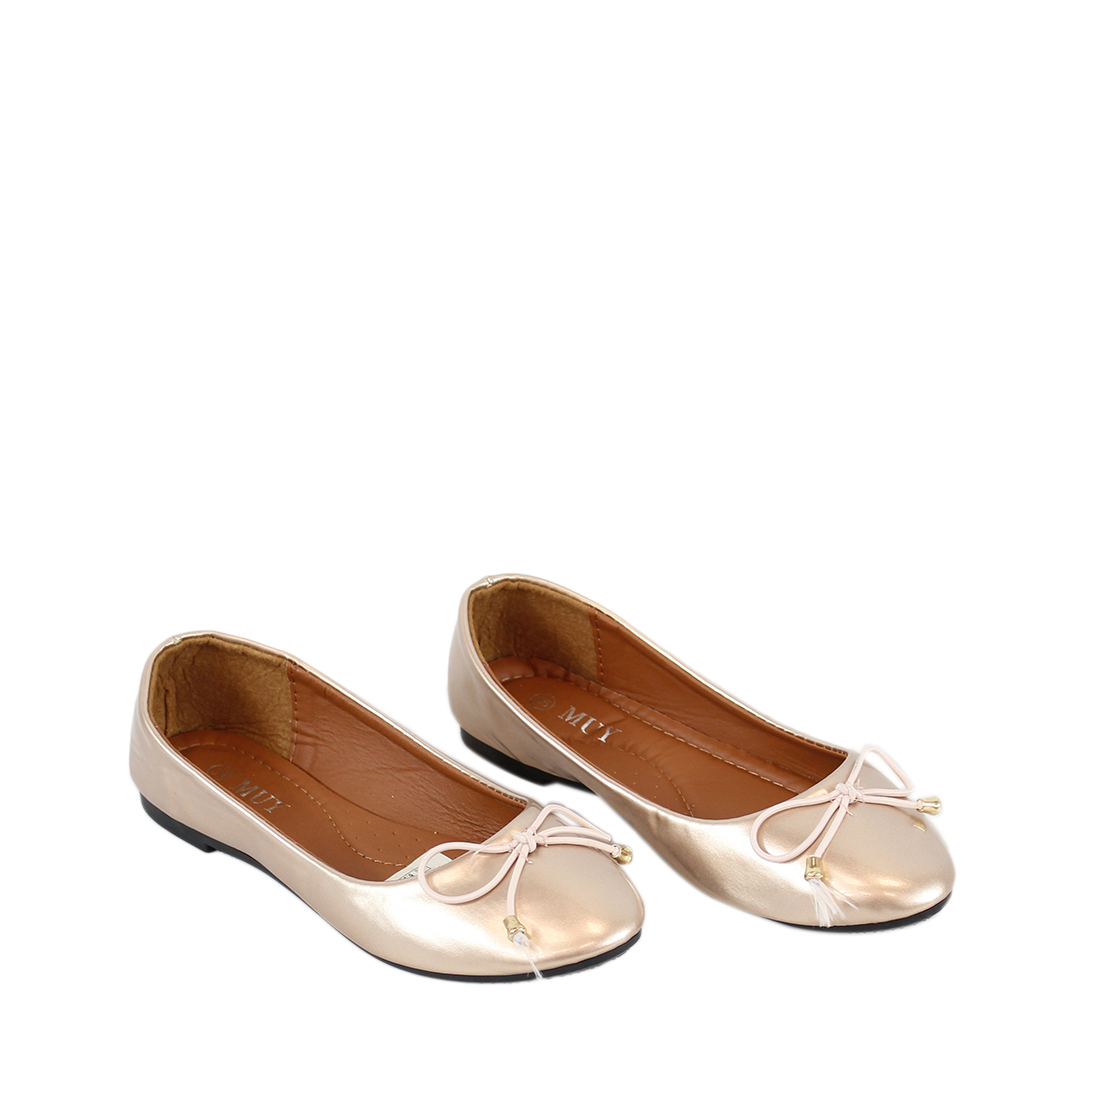 Flat plain shiny ballerinas with bow